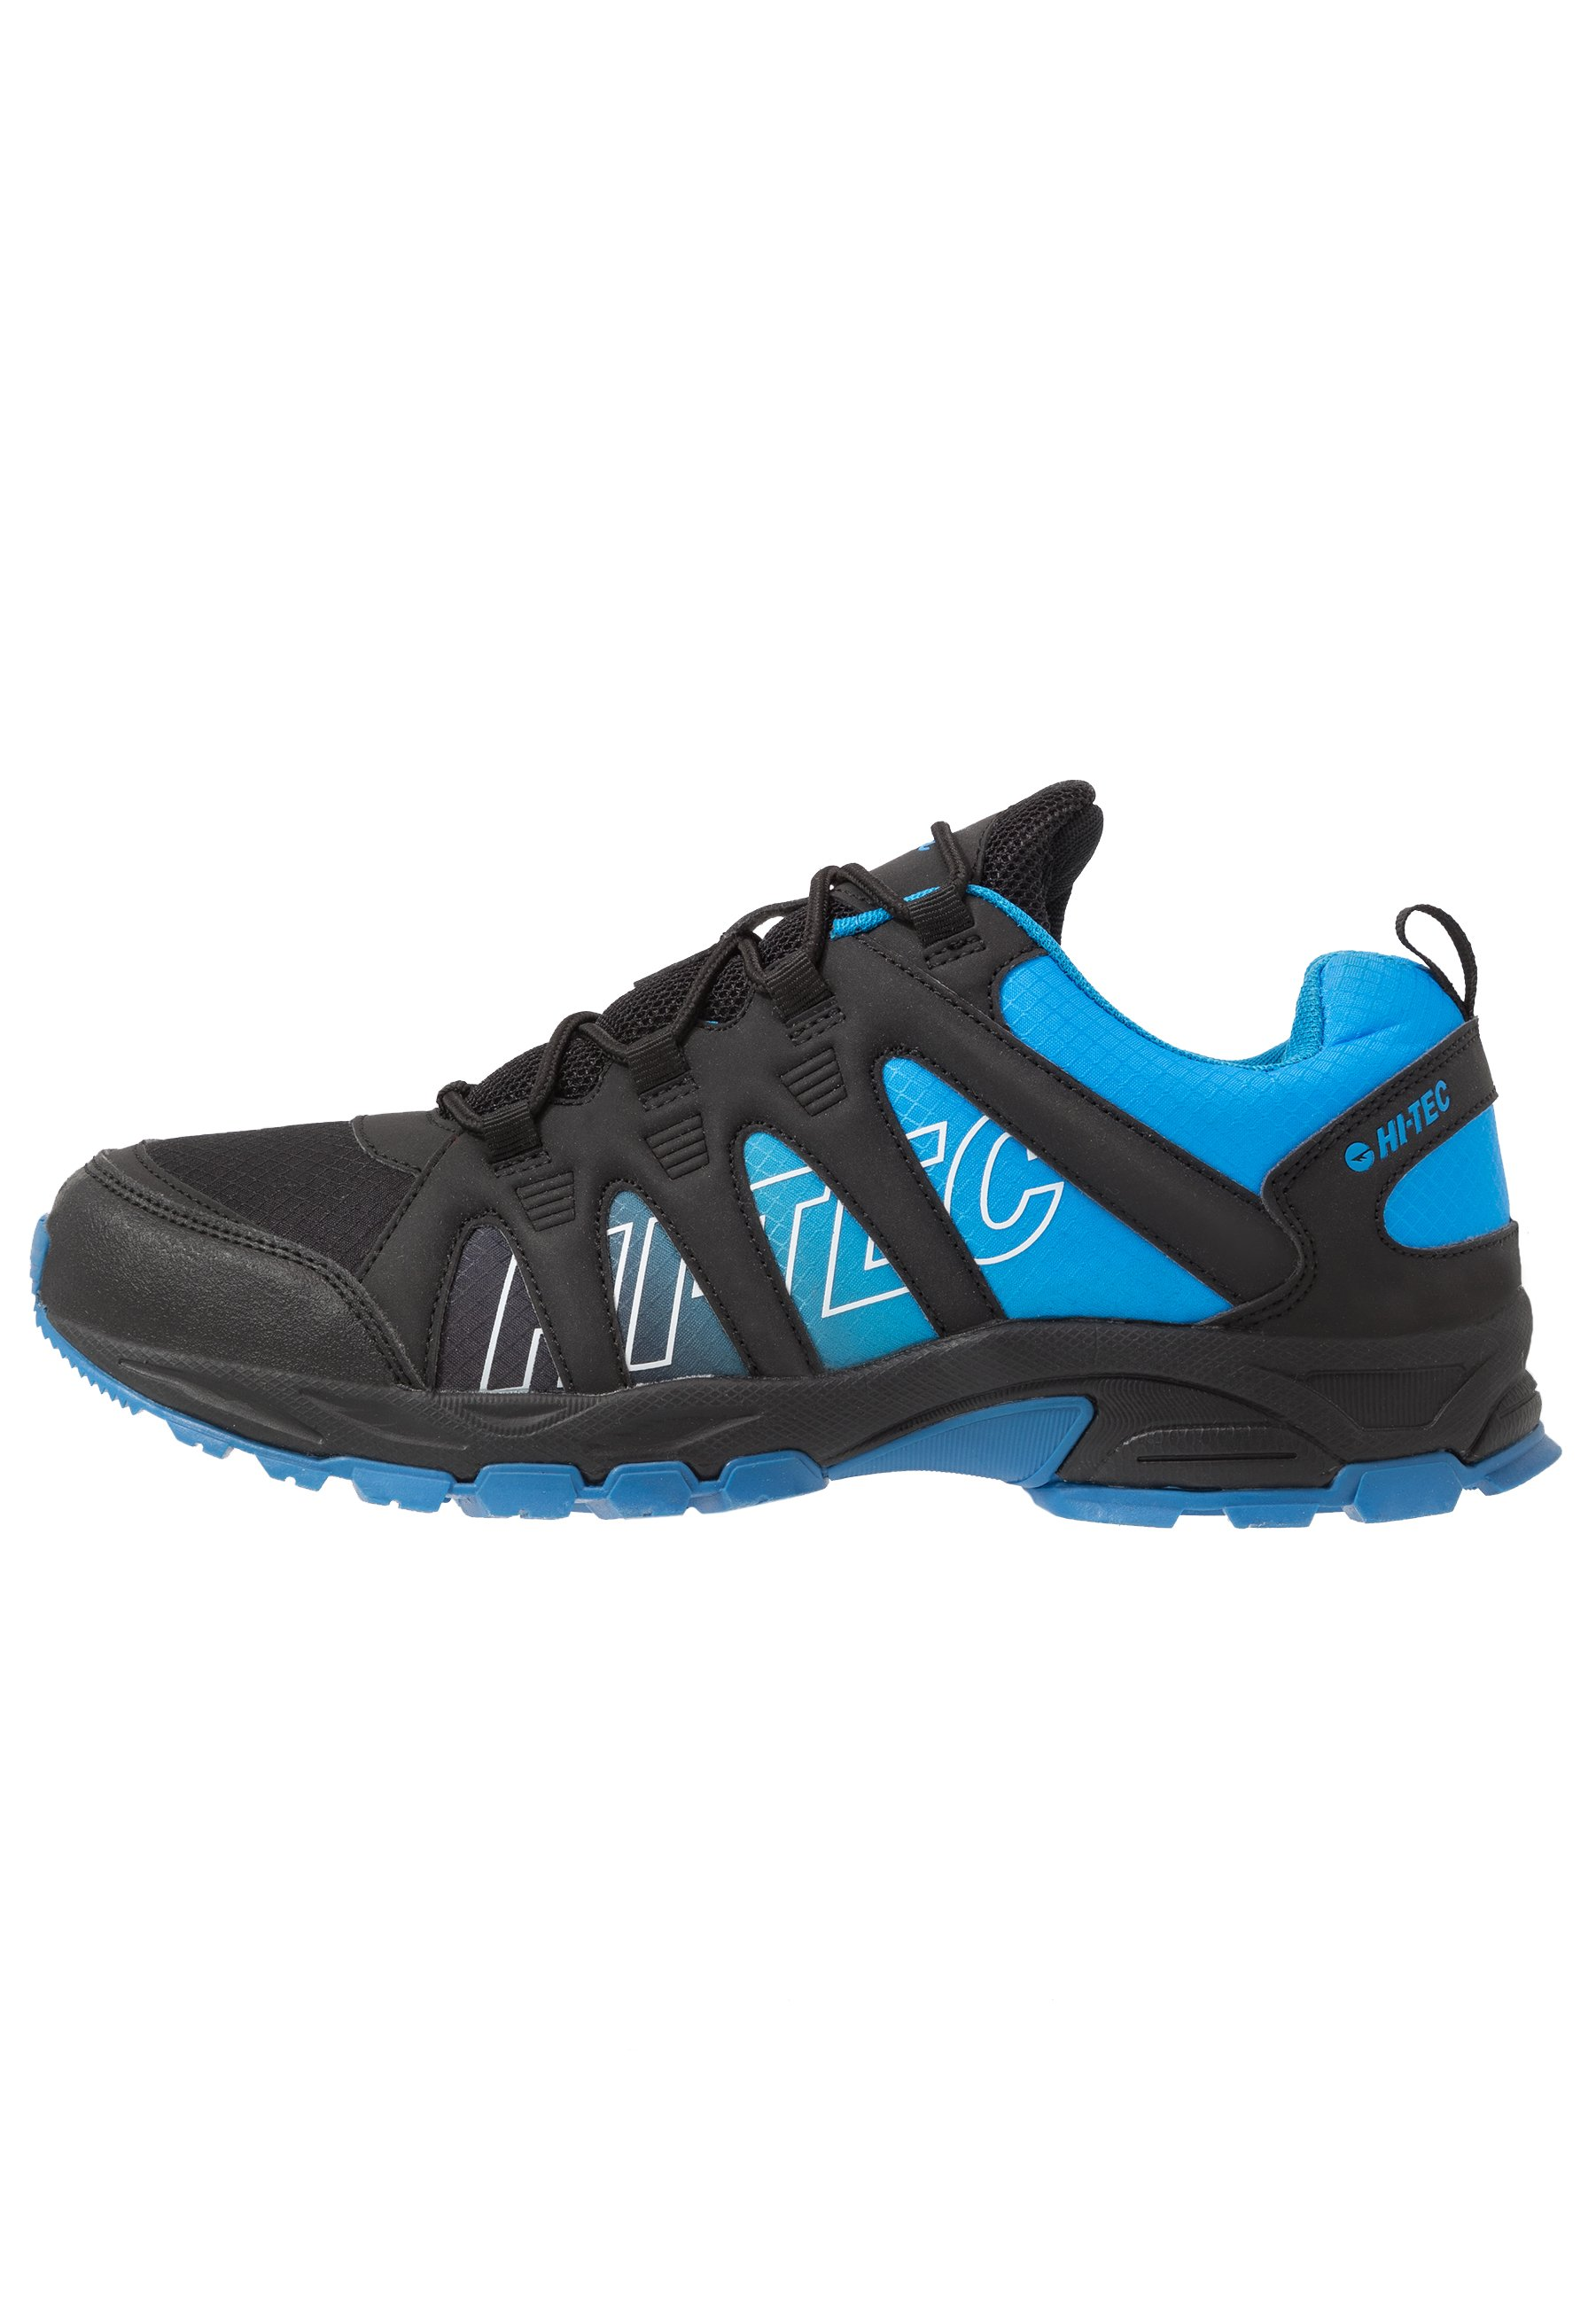 Hi-tec Warrior - Scarpa Da Hiking Black/grey FAllv